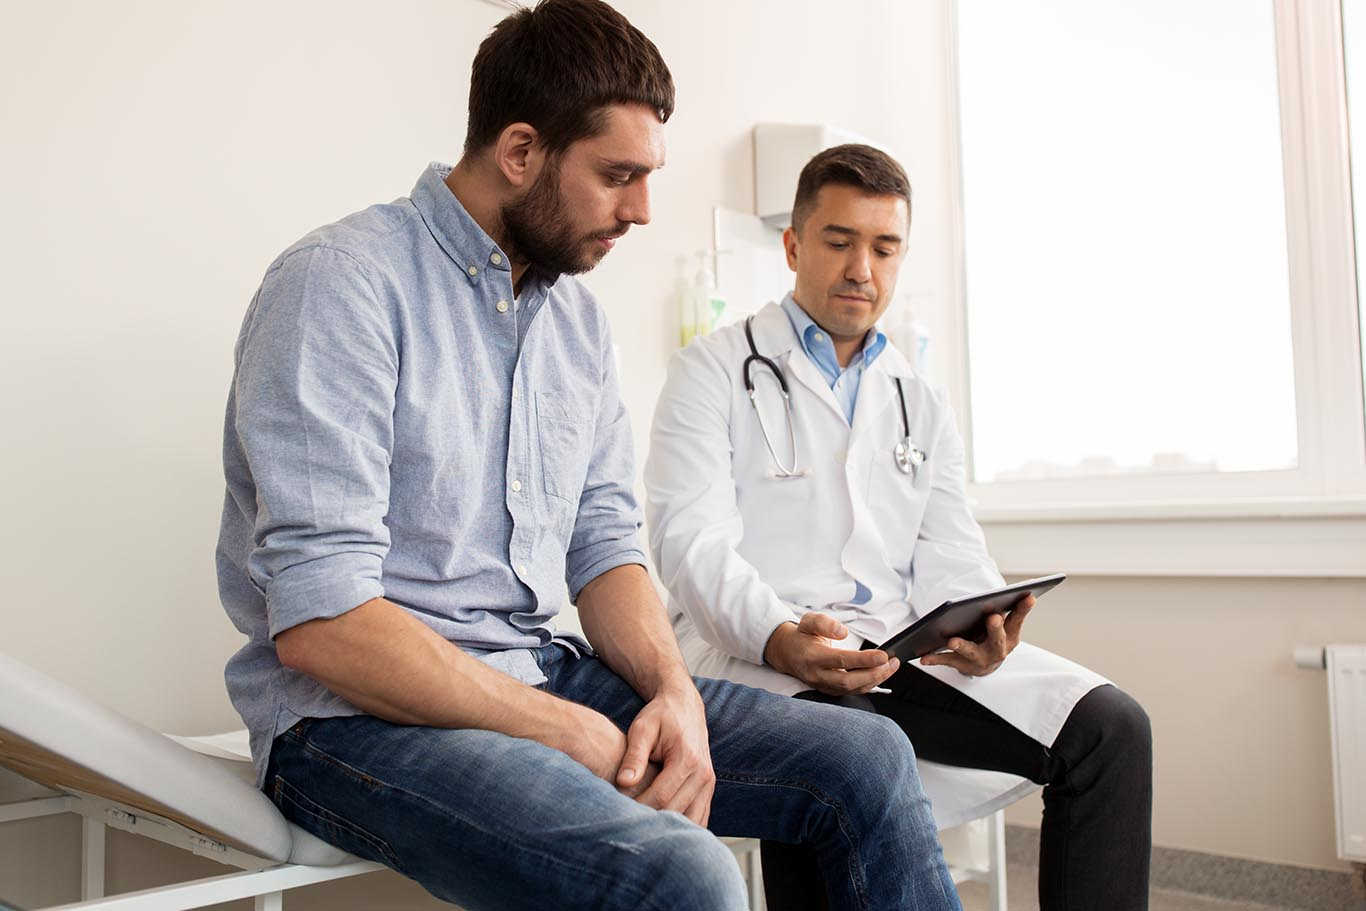 male patient speaking with doctor